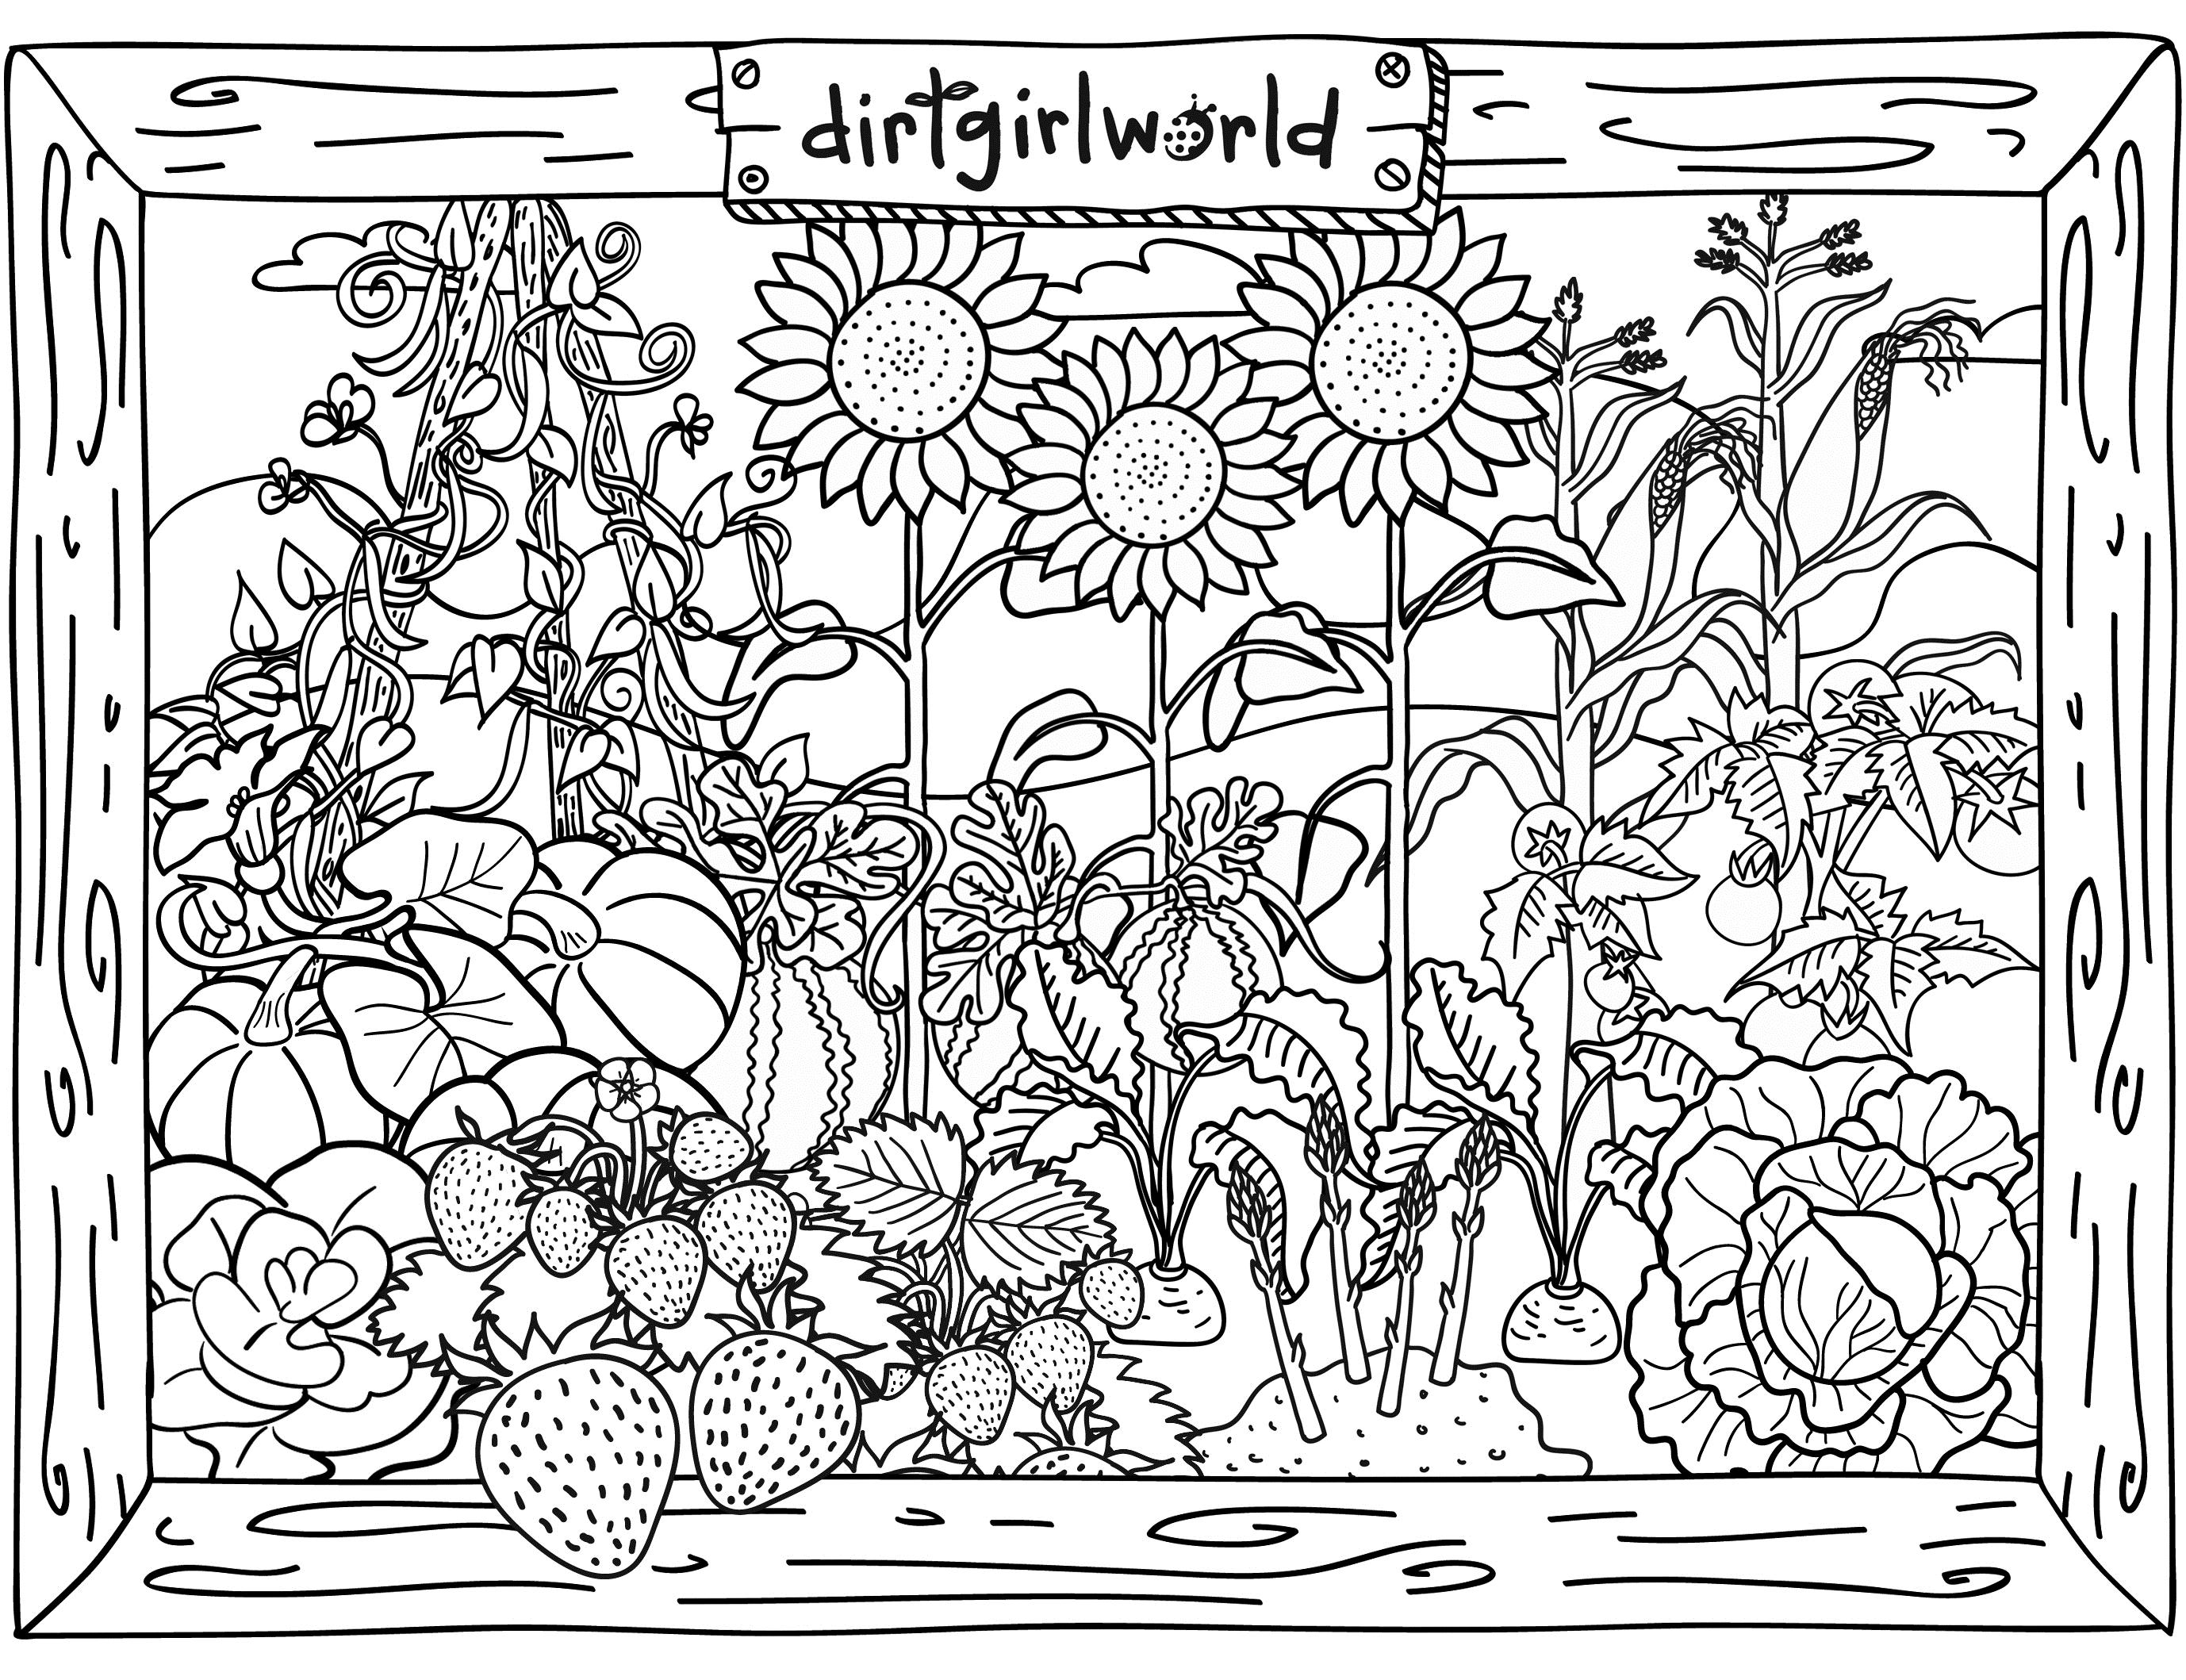 garden colouring pages for kids gardening coloring pages best coloring pages for kids garden for colouring kids pages 1 1